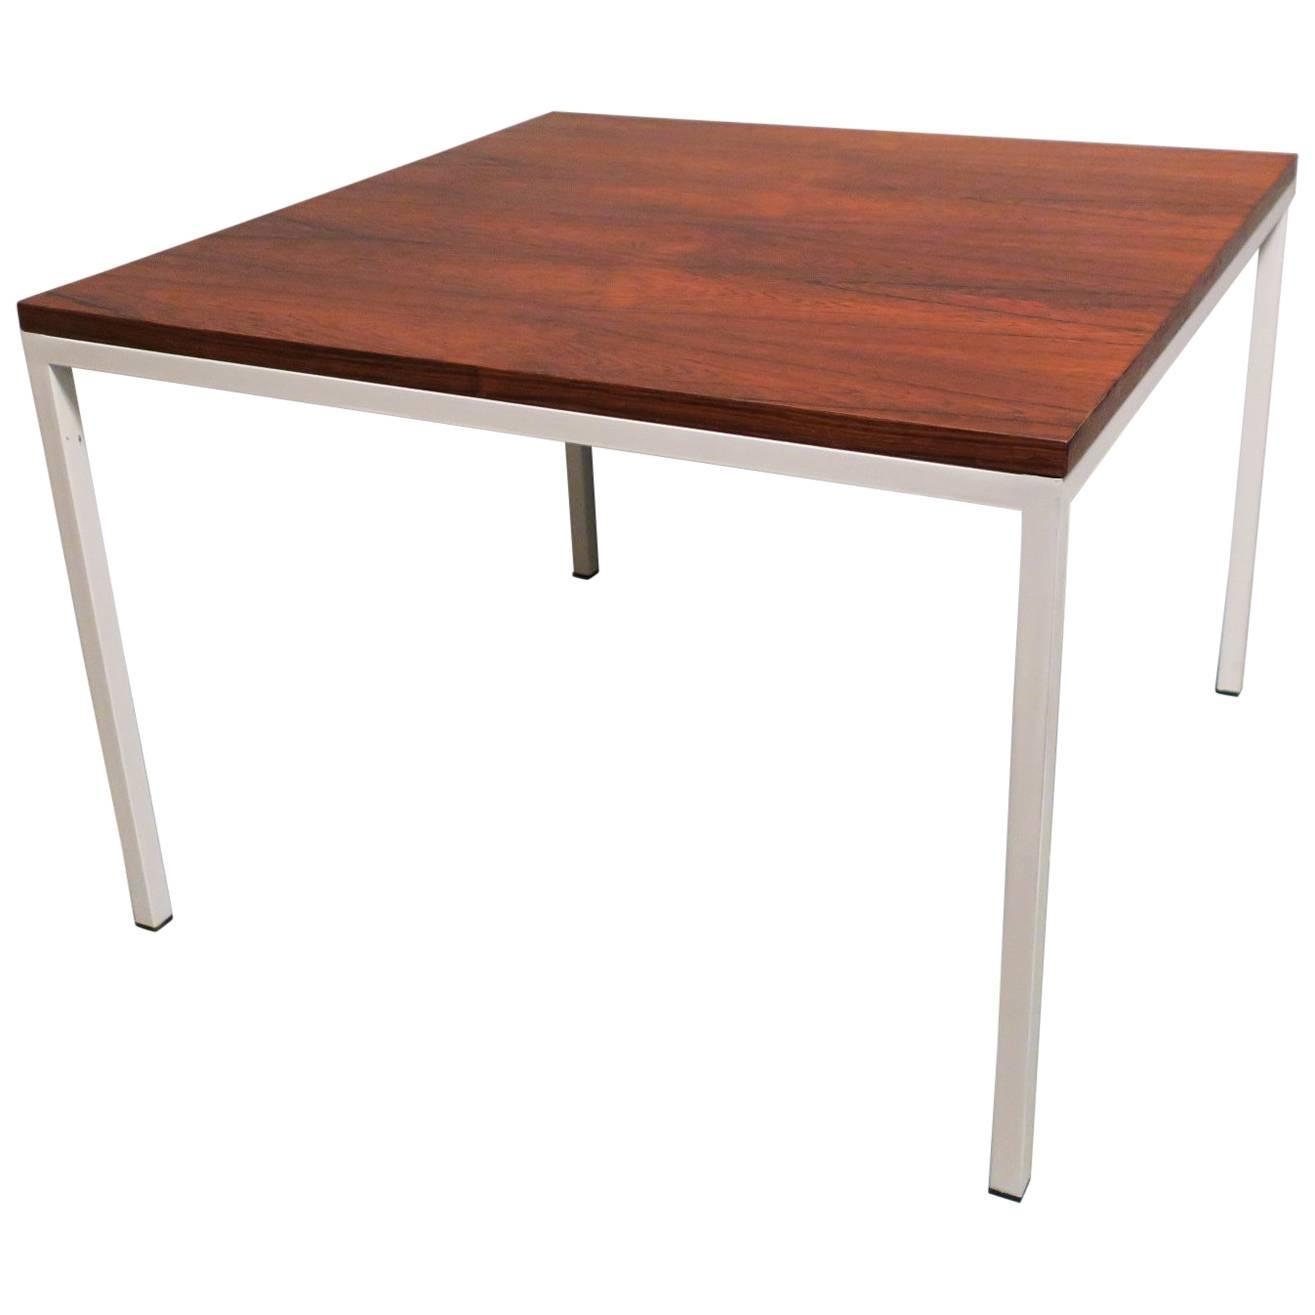 Modernist rosewood square coffee table with metal legs for sale at 1stdibs Metal square coffee table